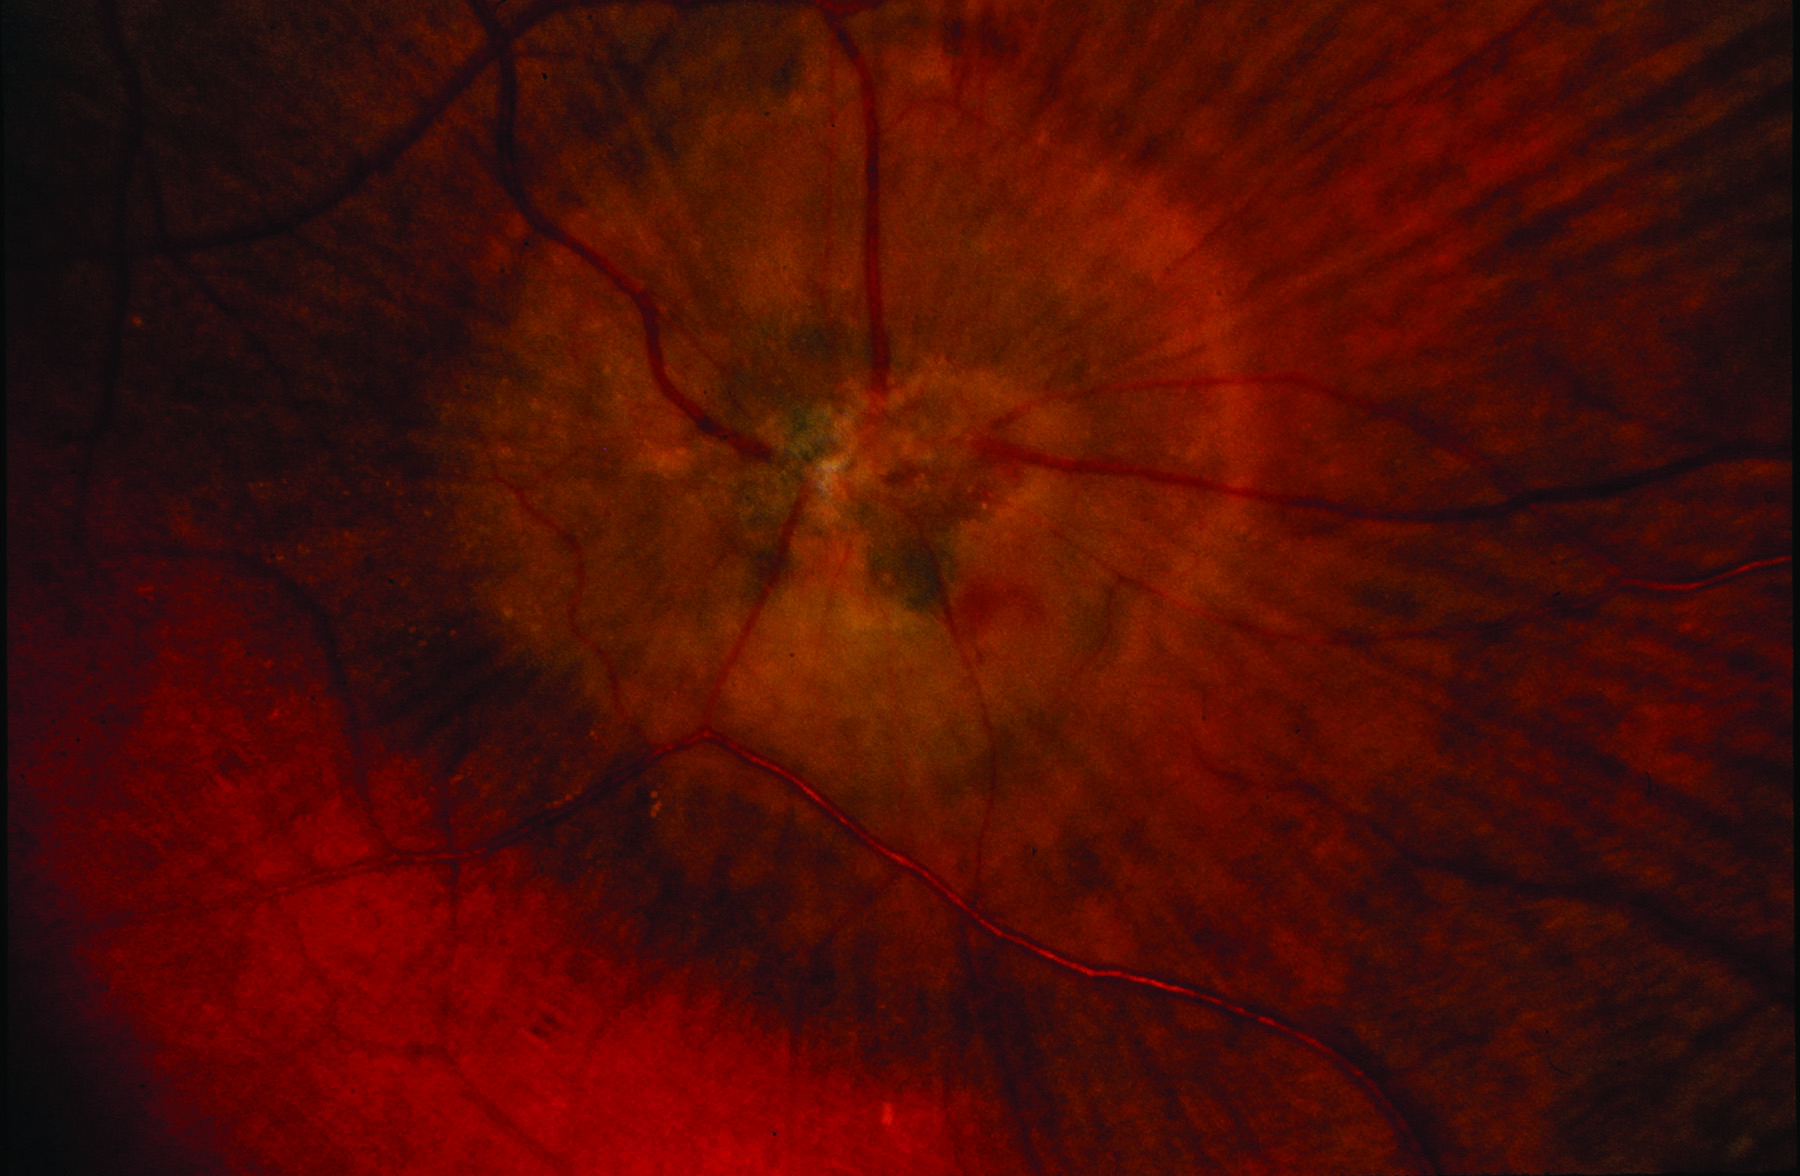 Figure 2. Macular scarring, retinal hemorrhages (bleeds), crystals and abnormal blood vessels characteristic of JFT Type 2. Image courtesy of the ASRS Retina Image Bank, contributed by David Callanan, MD, Texas Retina Associates, 2014. Copyright American Society of Retina Specialists 2016.